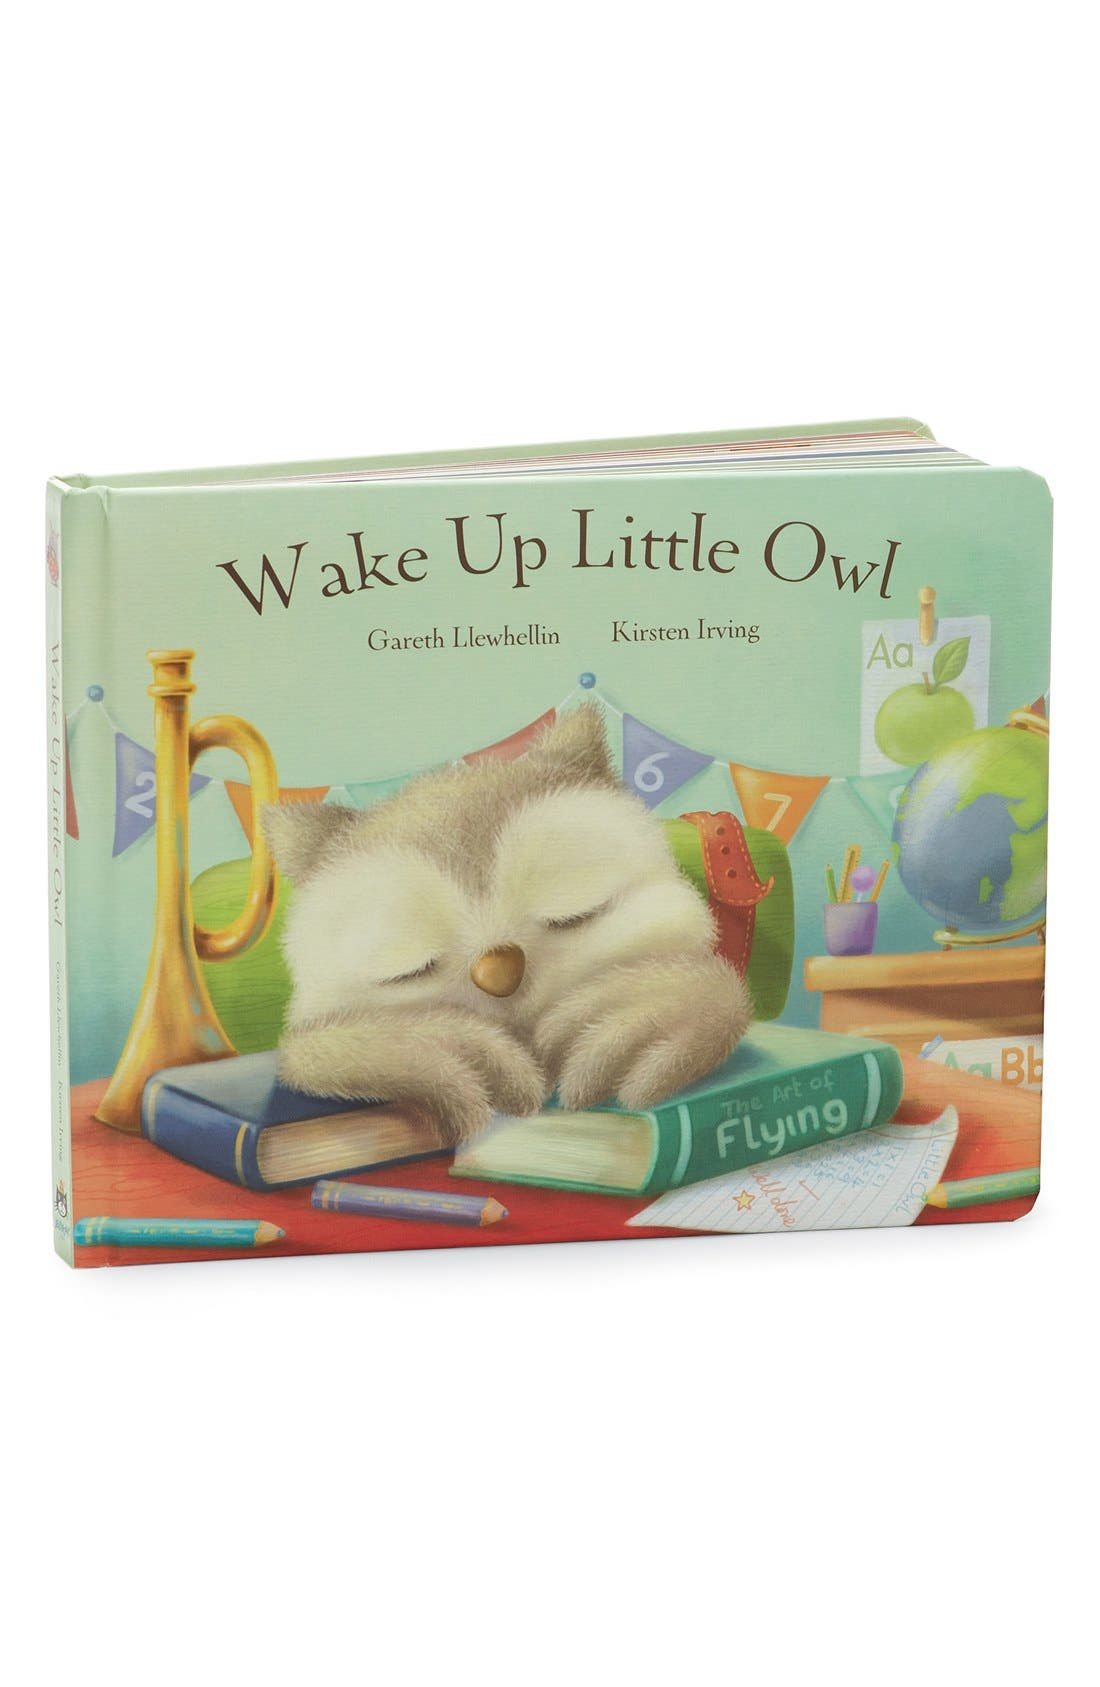 'Wake Up Little Owl' Board Book,                             Main thumbnail 1, color,                             NO COLOR